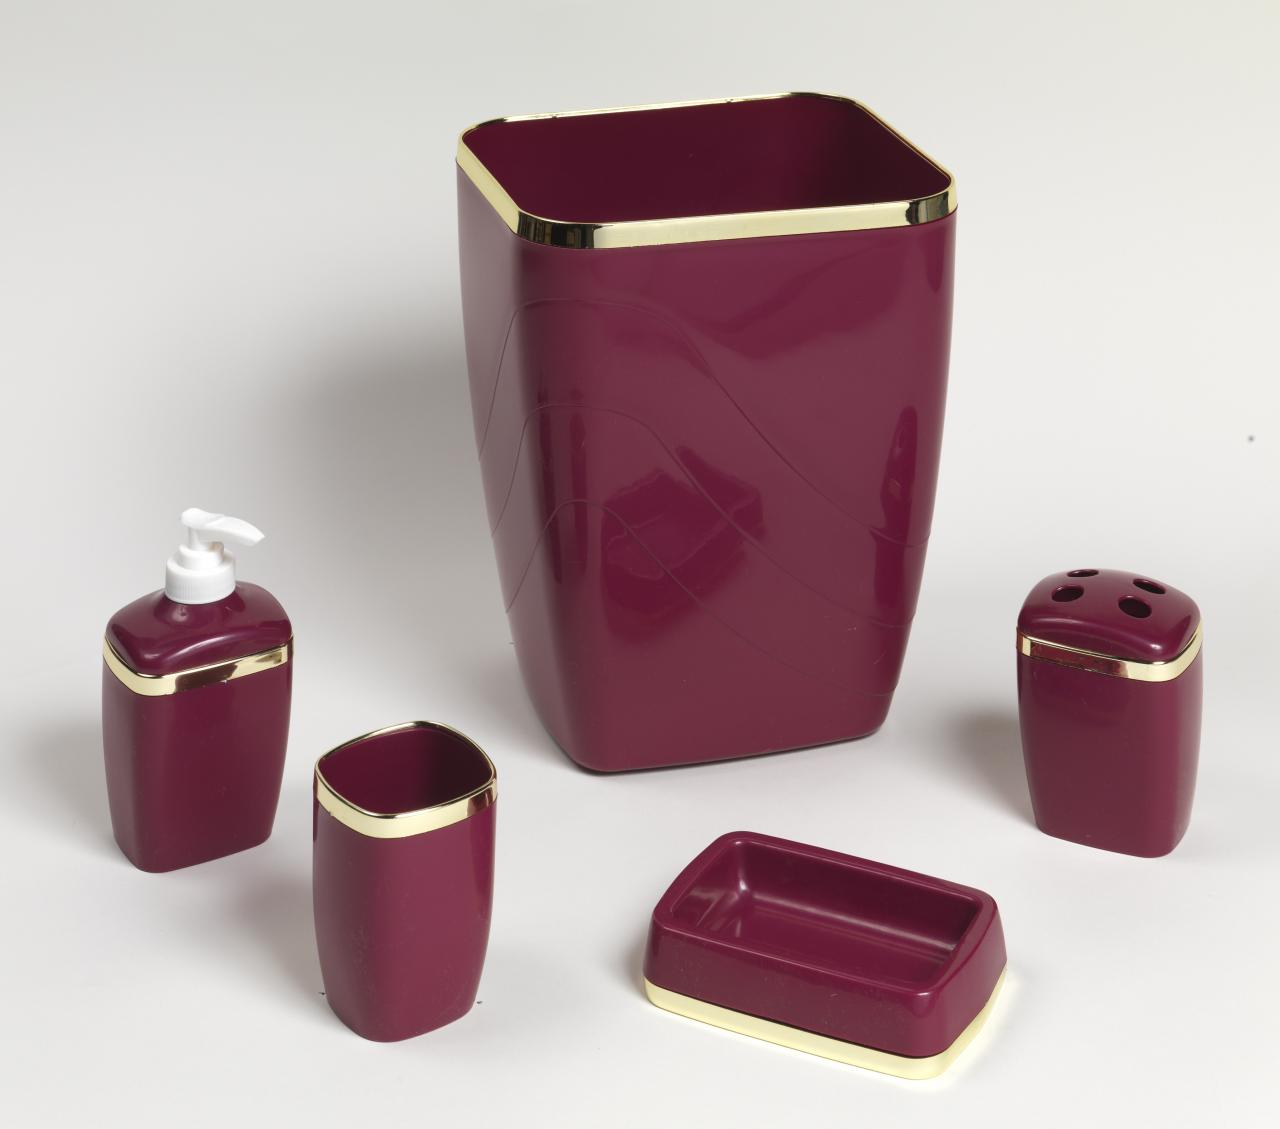 ... 5 Piece Plastic Bath Accessory Set, Burgundy ...